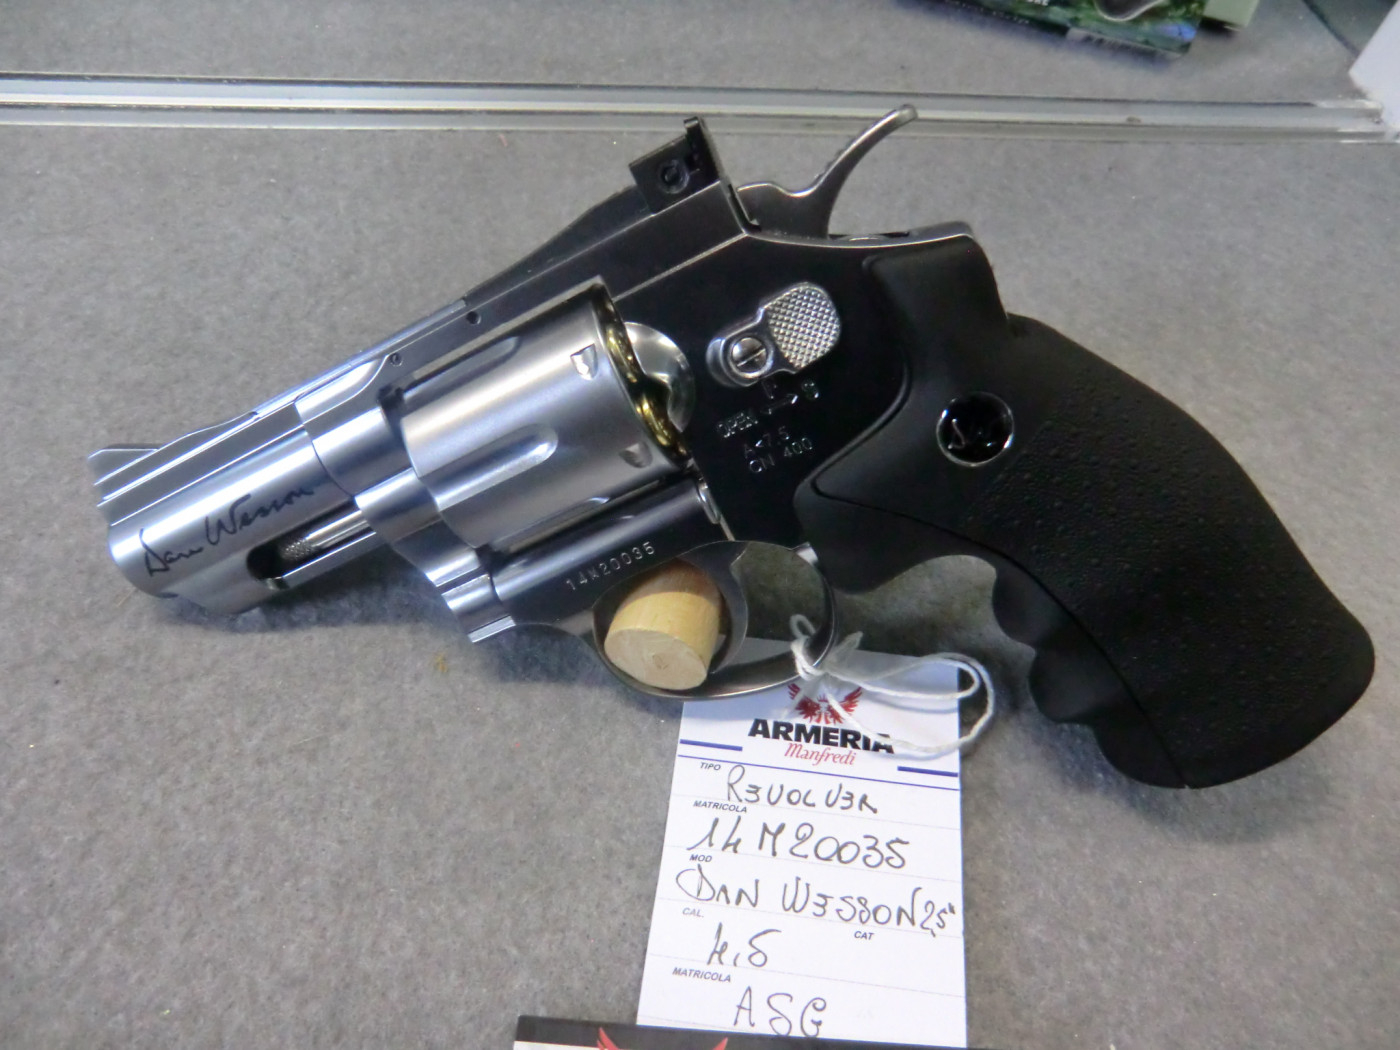 Dan Wesson calibro 4.5